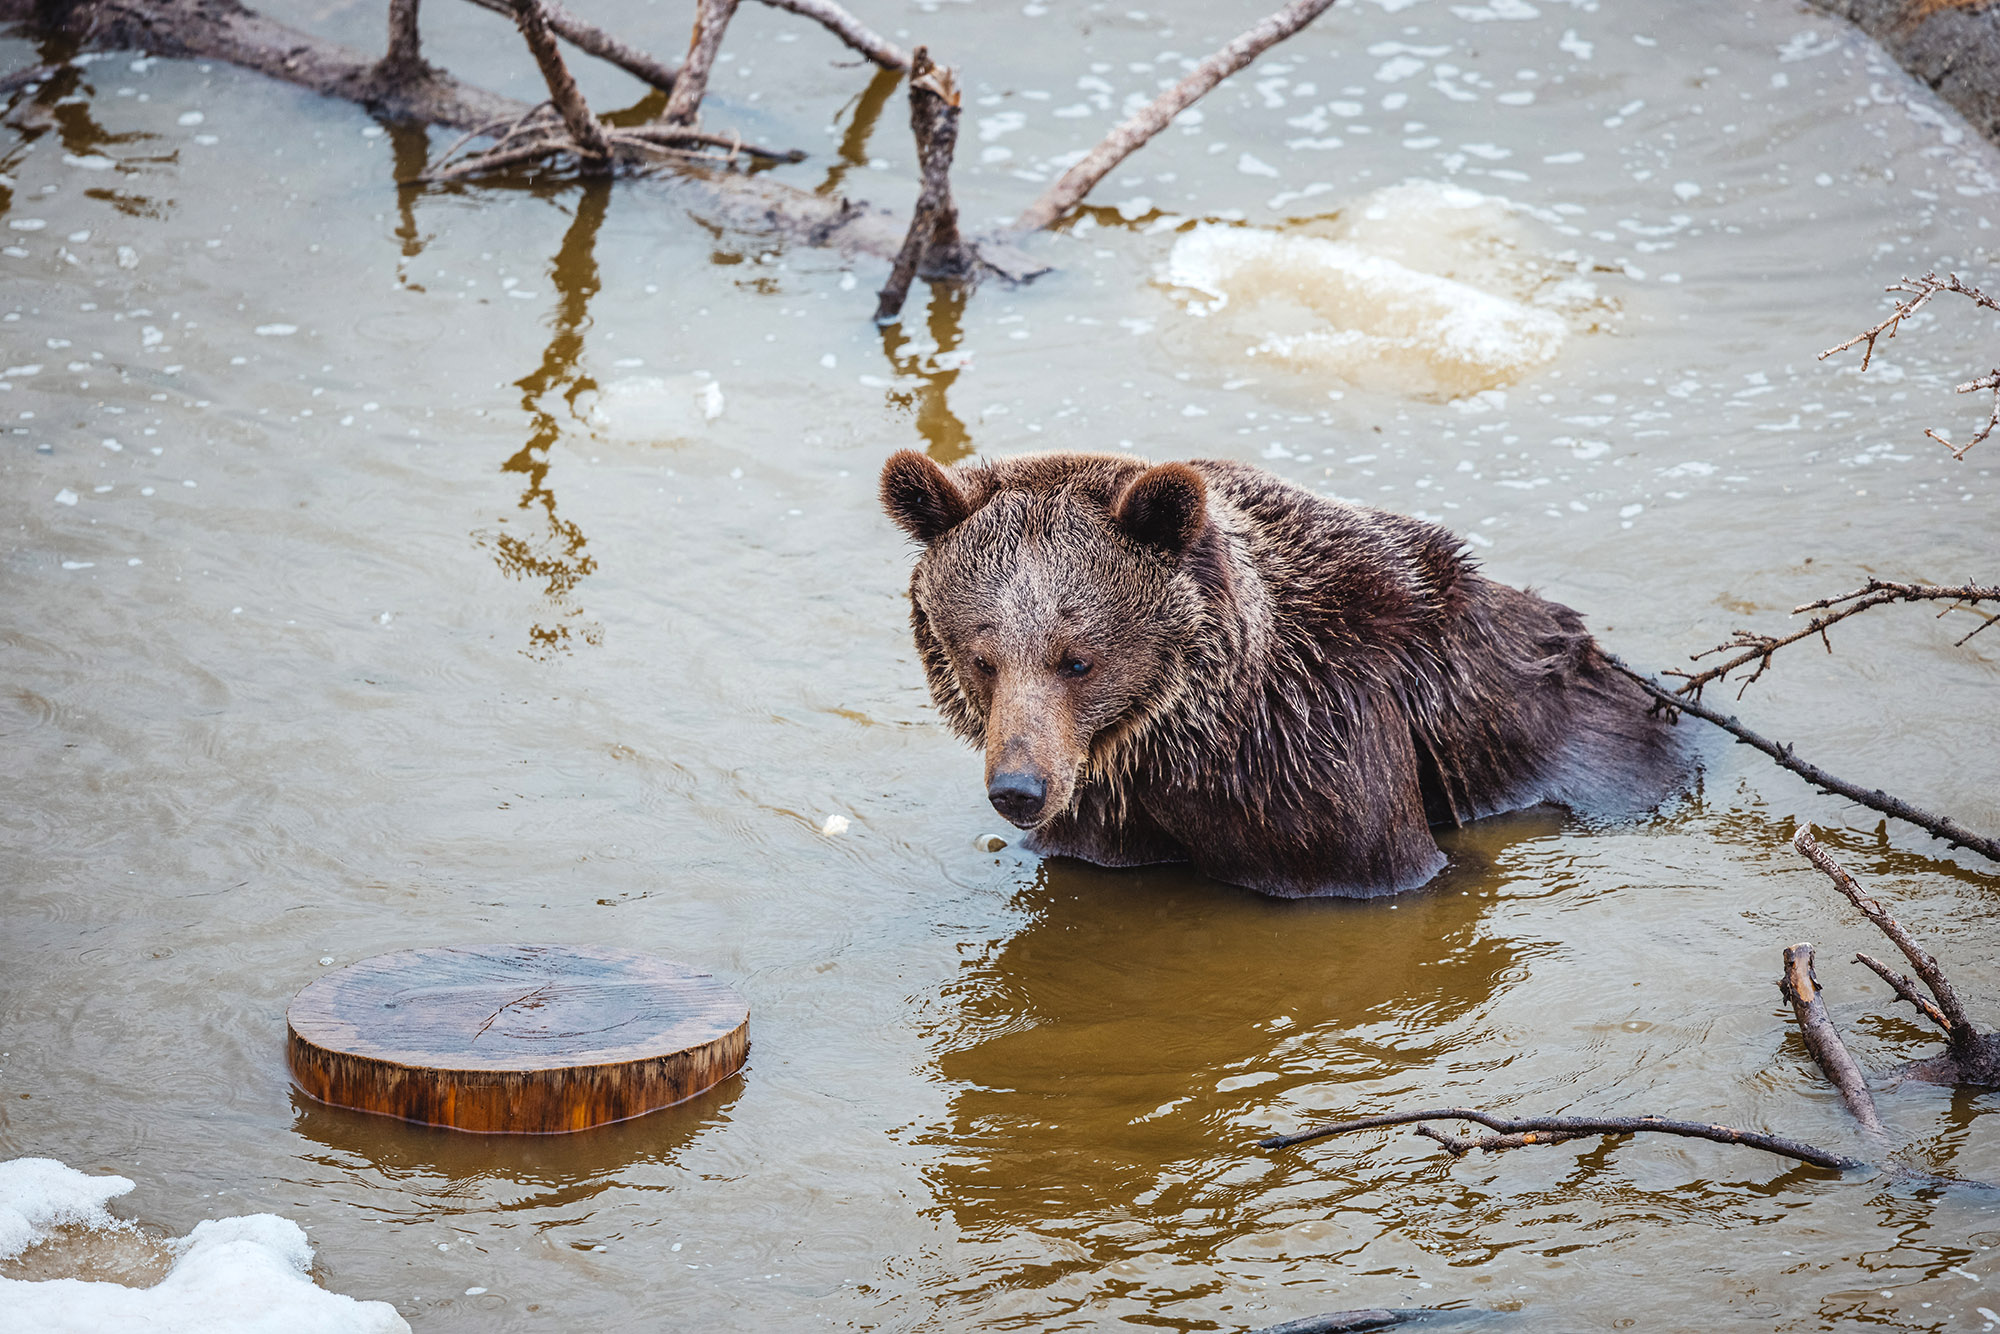 VIDEO: I Can Bear-ly Believe It: Rescued Circus Bear Wakes Up In Her Snowy Winter Wonderland